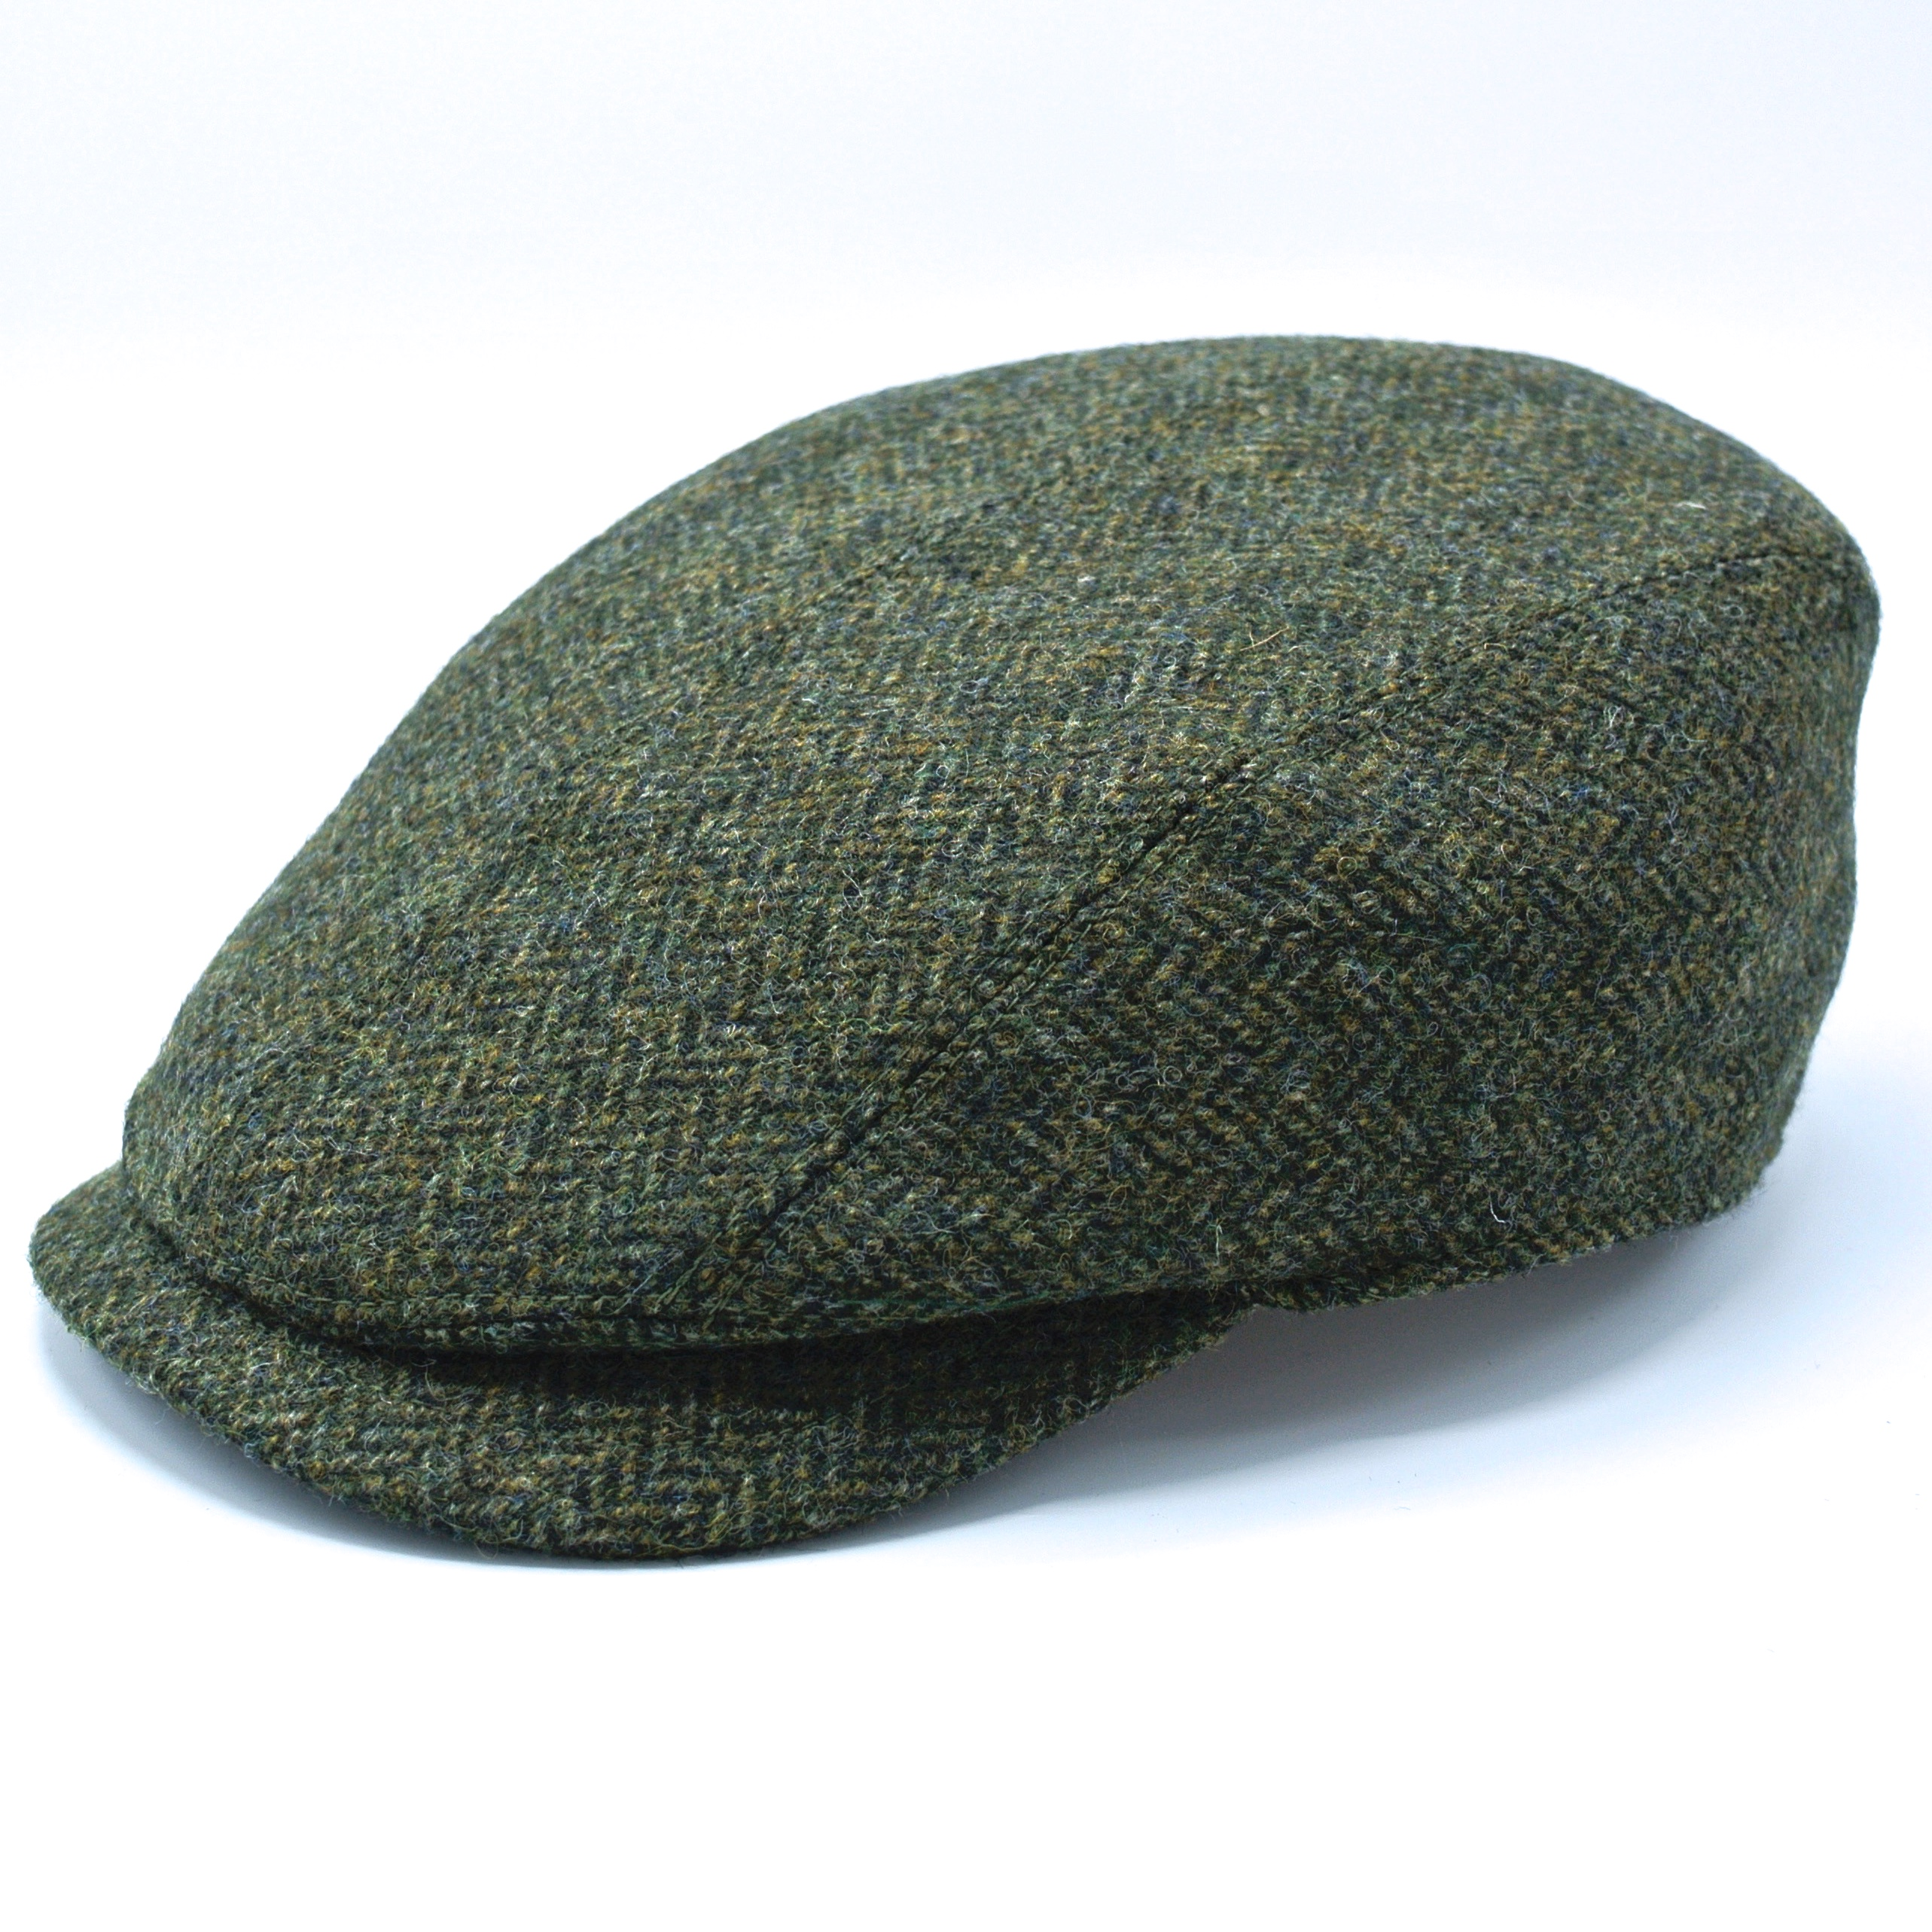 Lawrens and Foster Flat Cap Tweed Dark Green